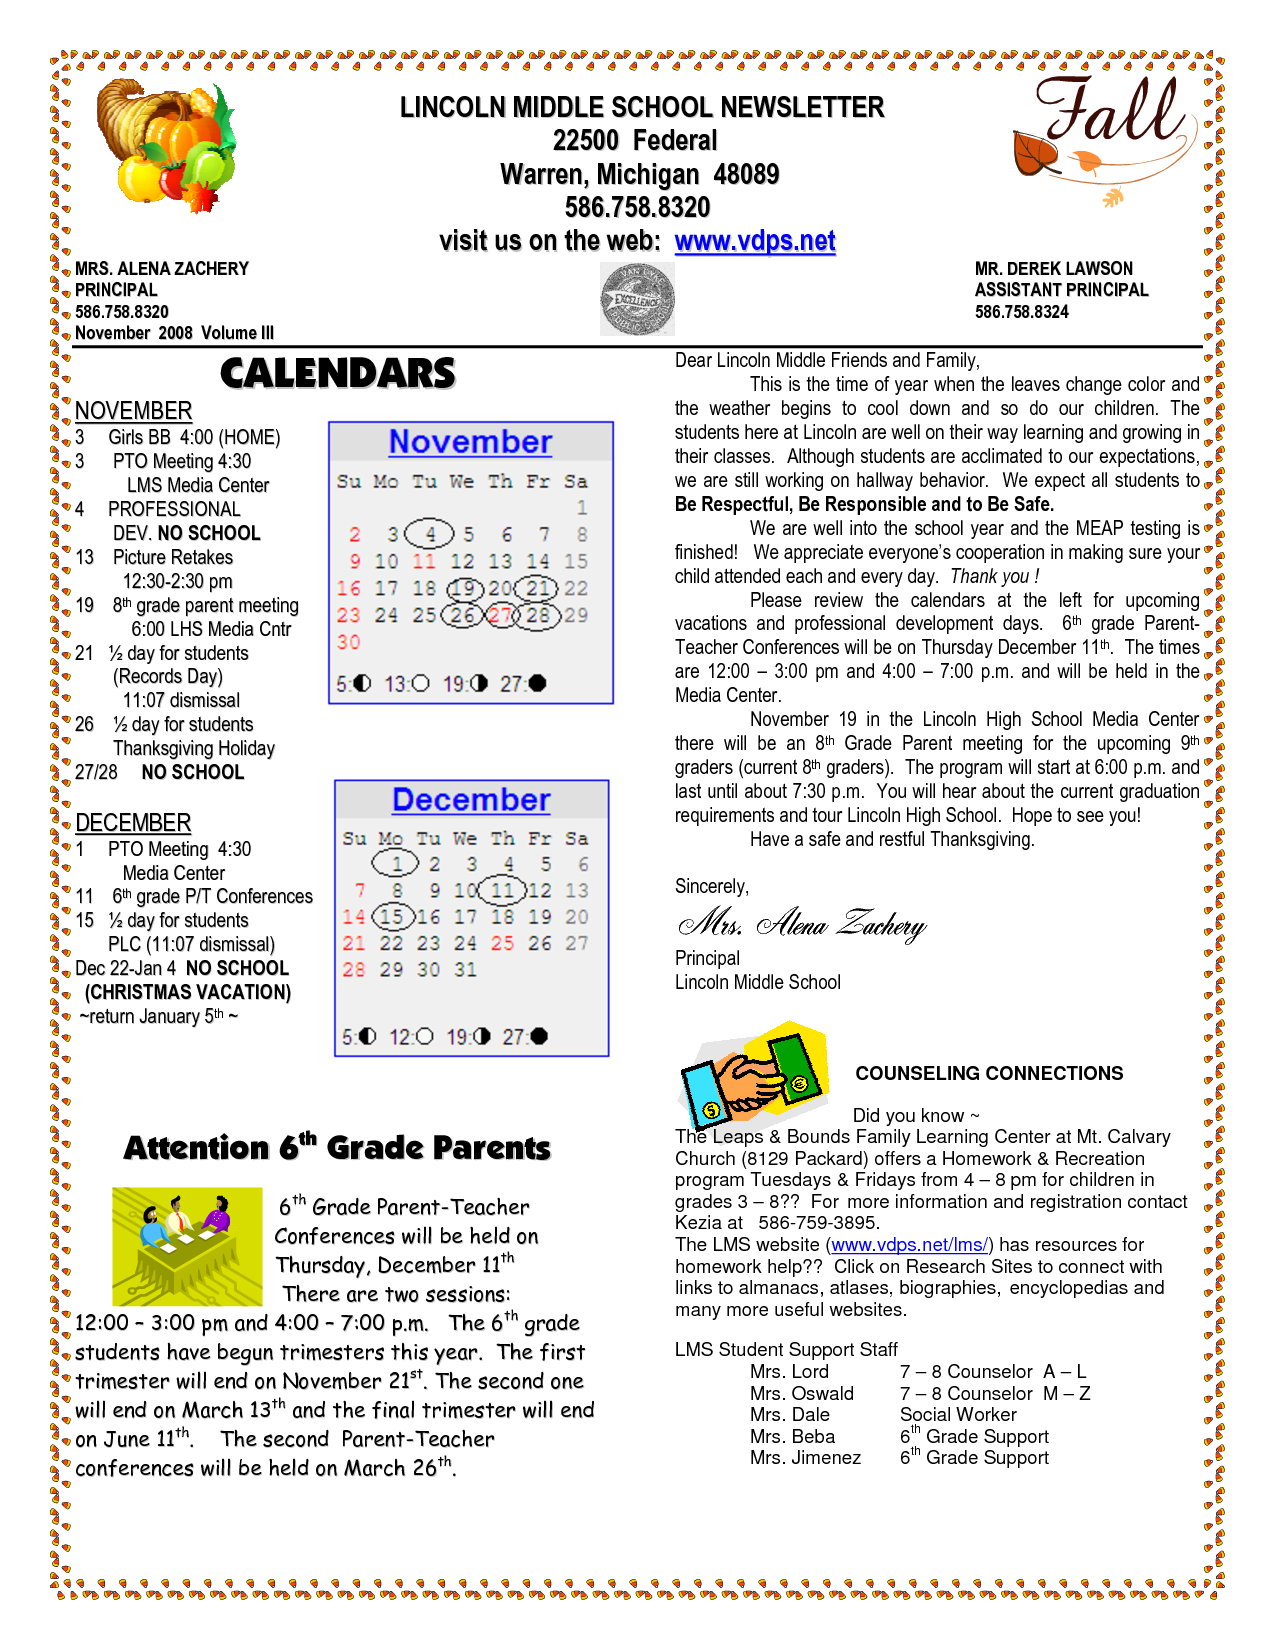 printable current information articles and reviews meant for center school